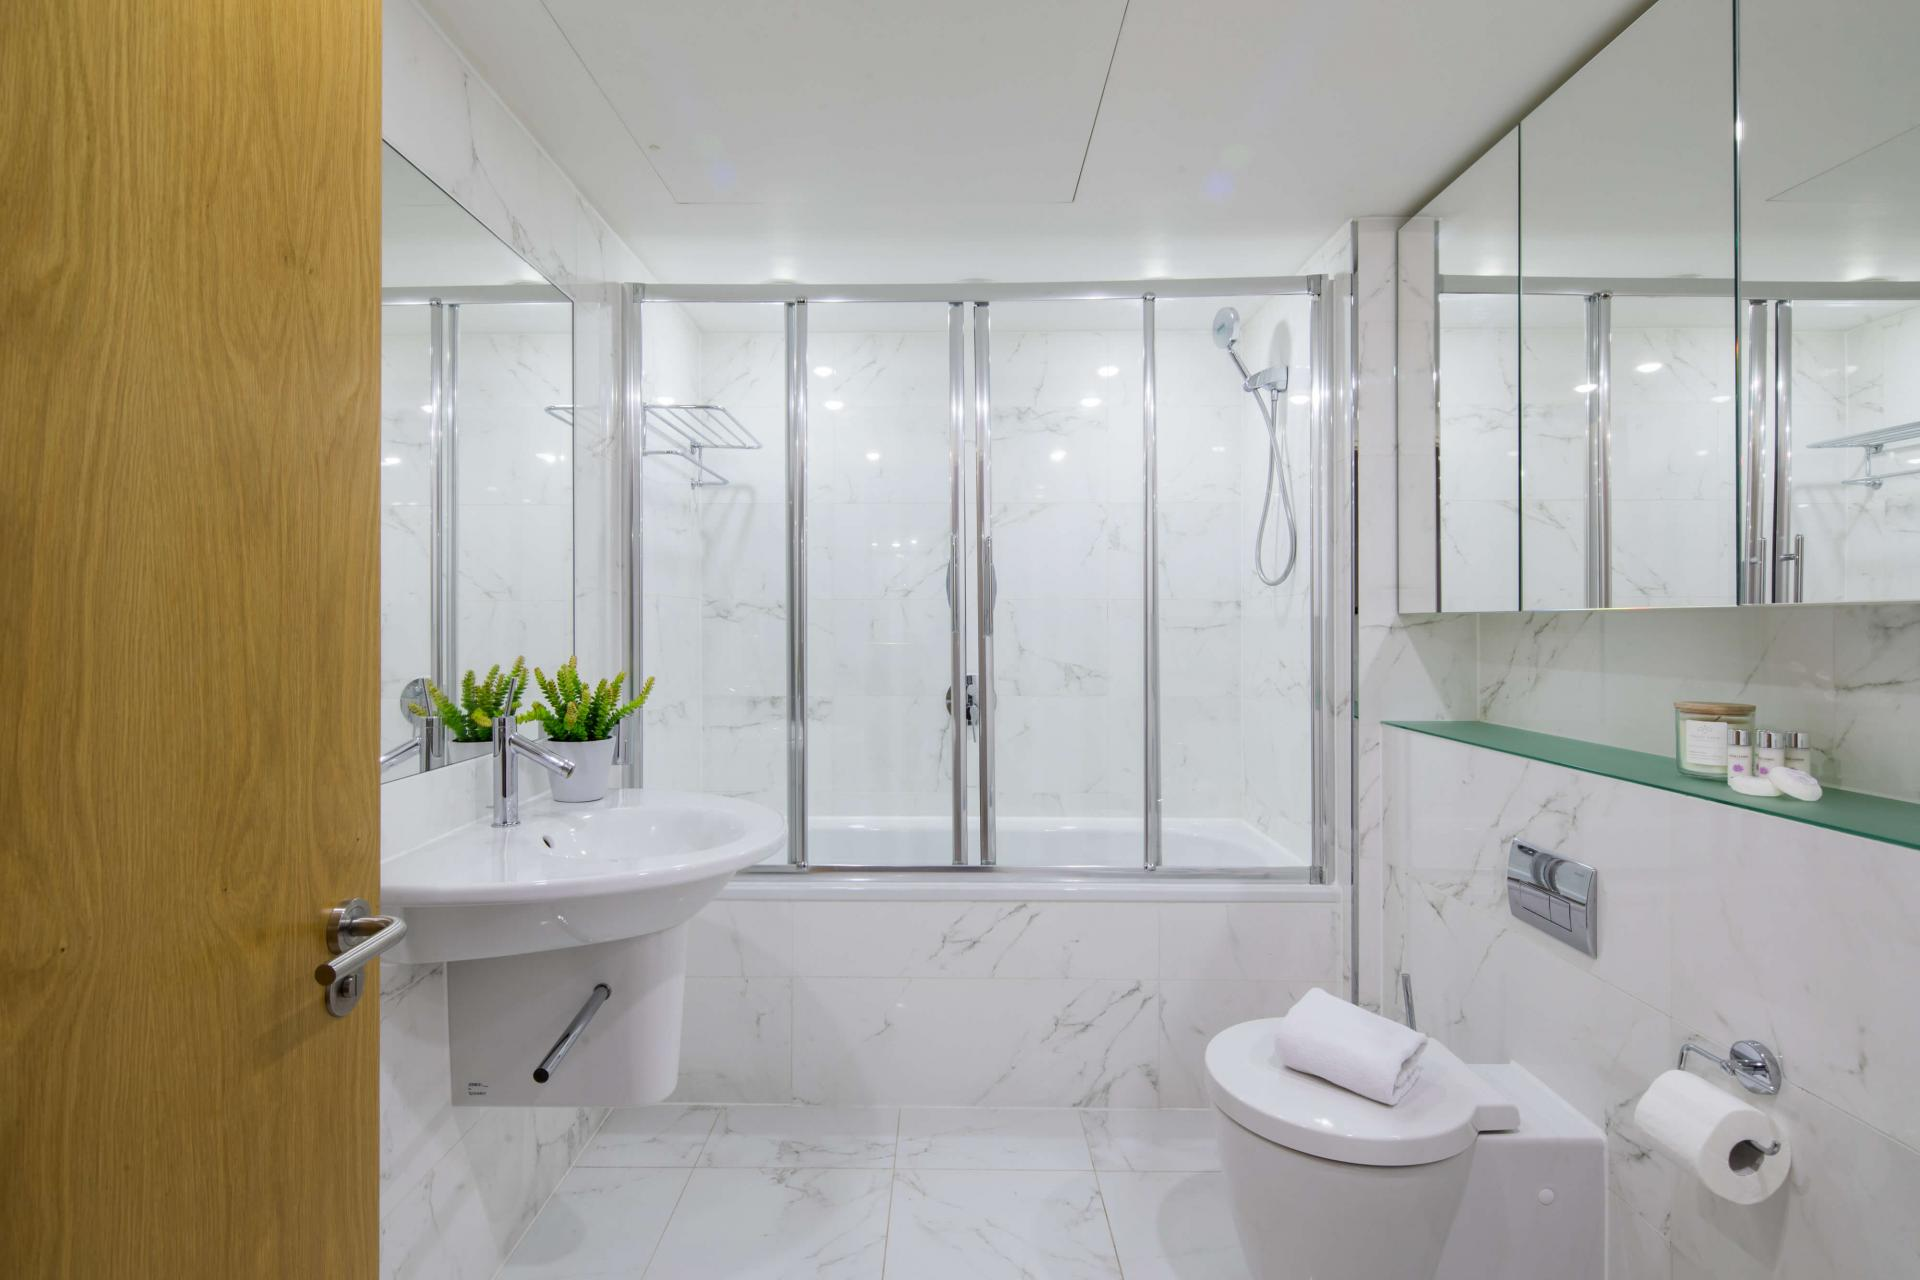 Bathroom at Meritas Court Apartments, Bayswater, London - Citybase Apartments